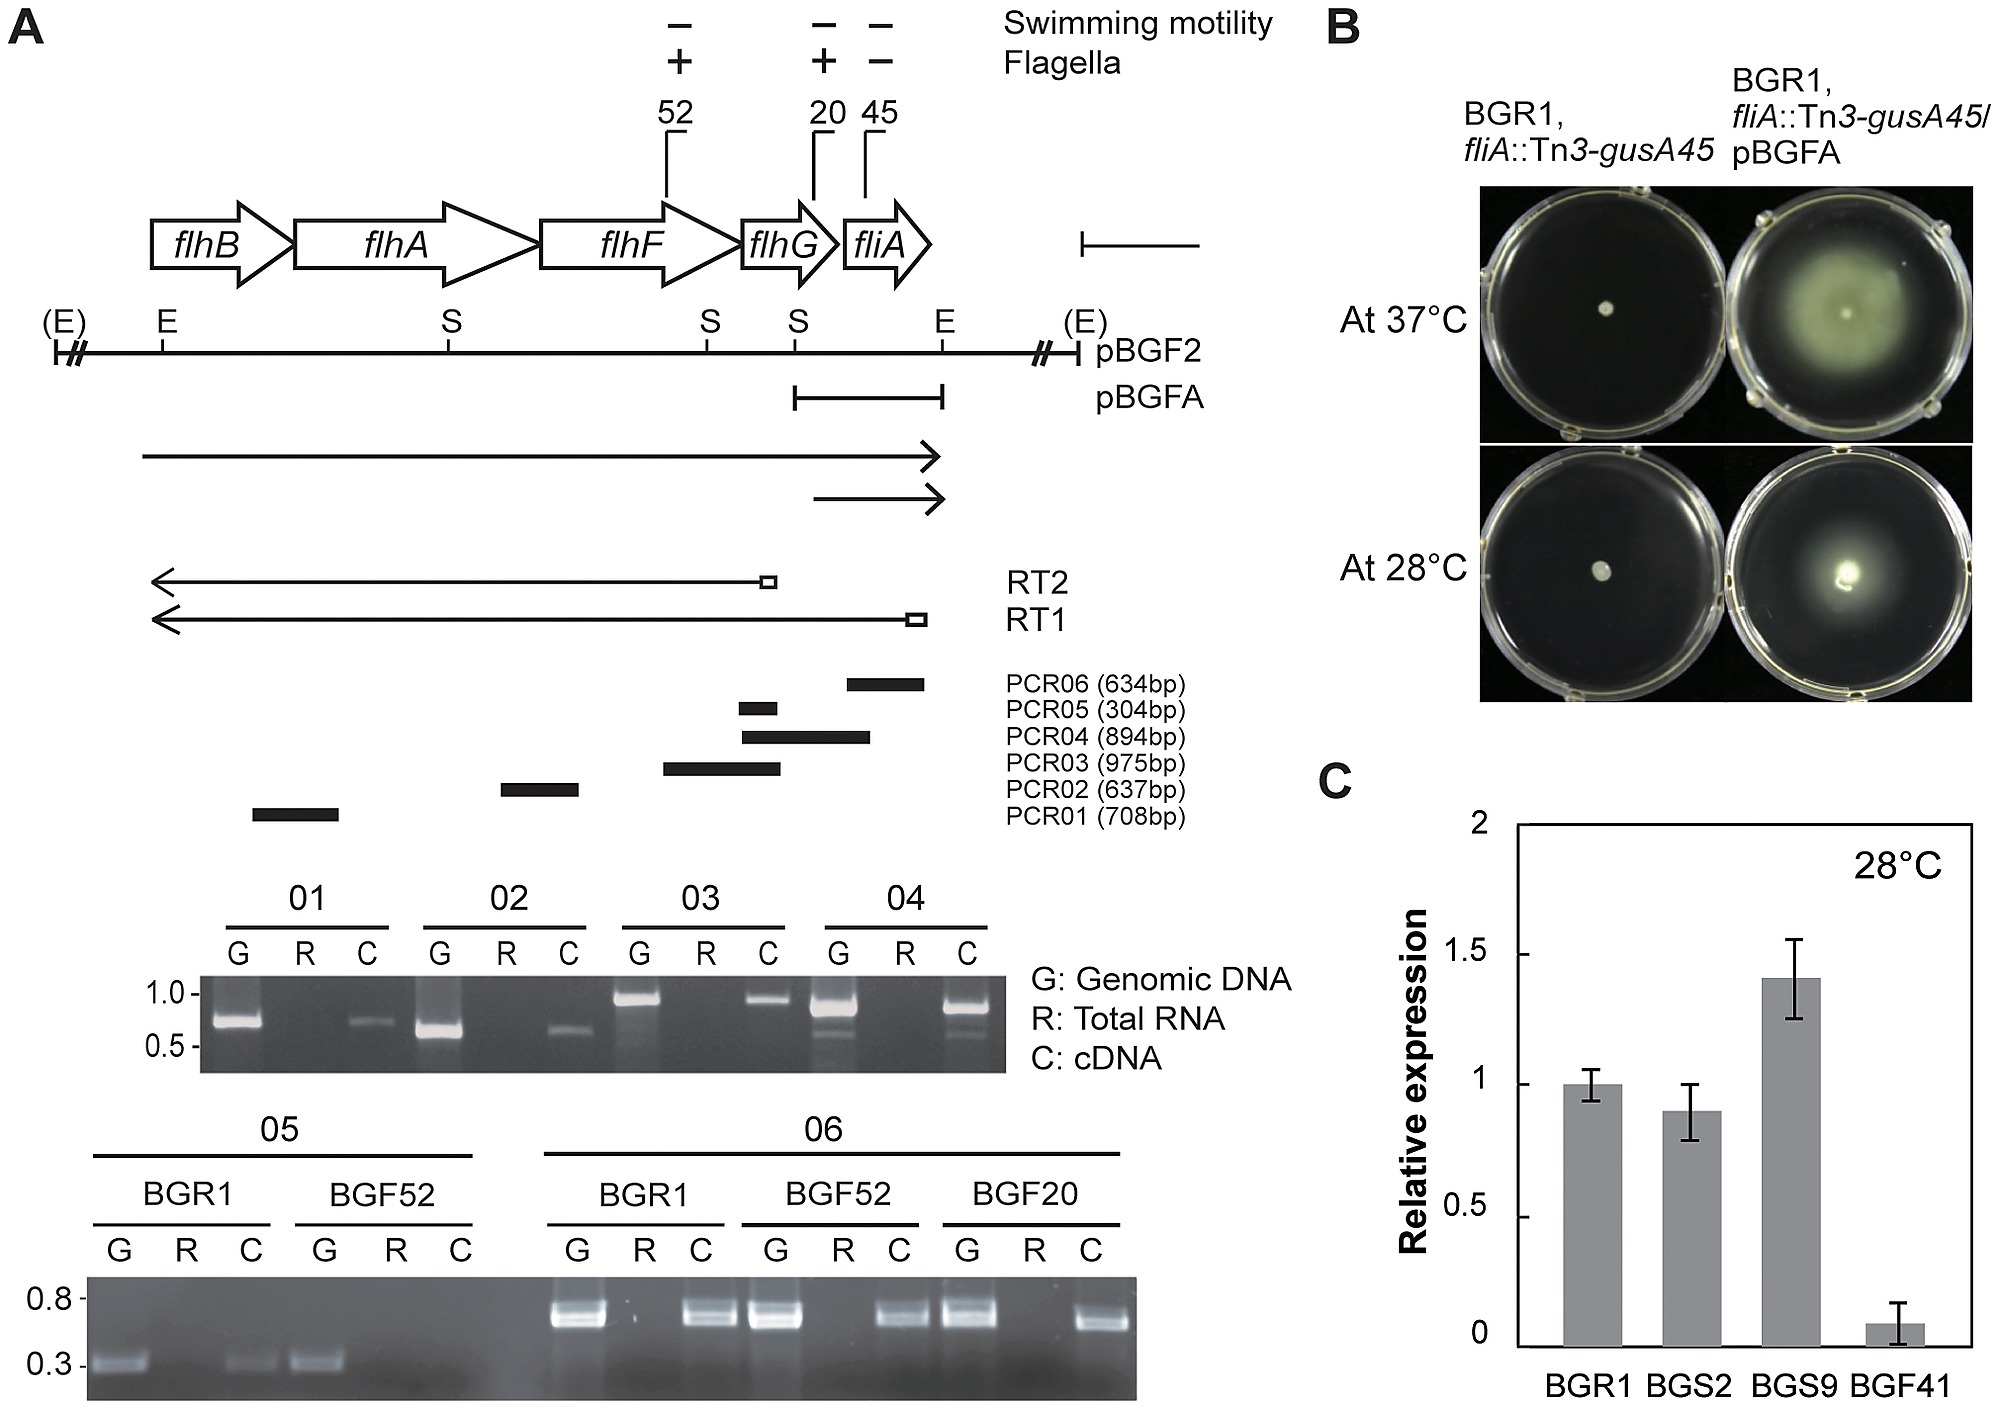 hight resolution of genetic organization of flhbafg and flia genes and flhf gene expression at 28 c